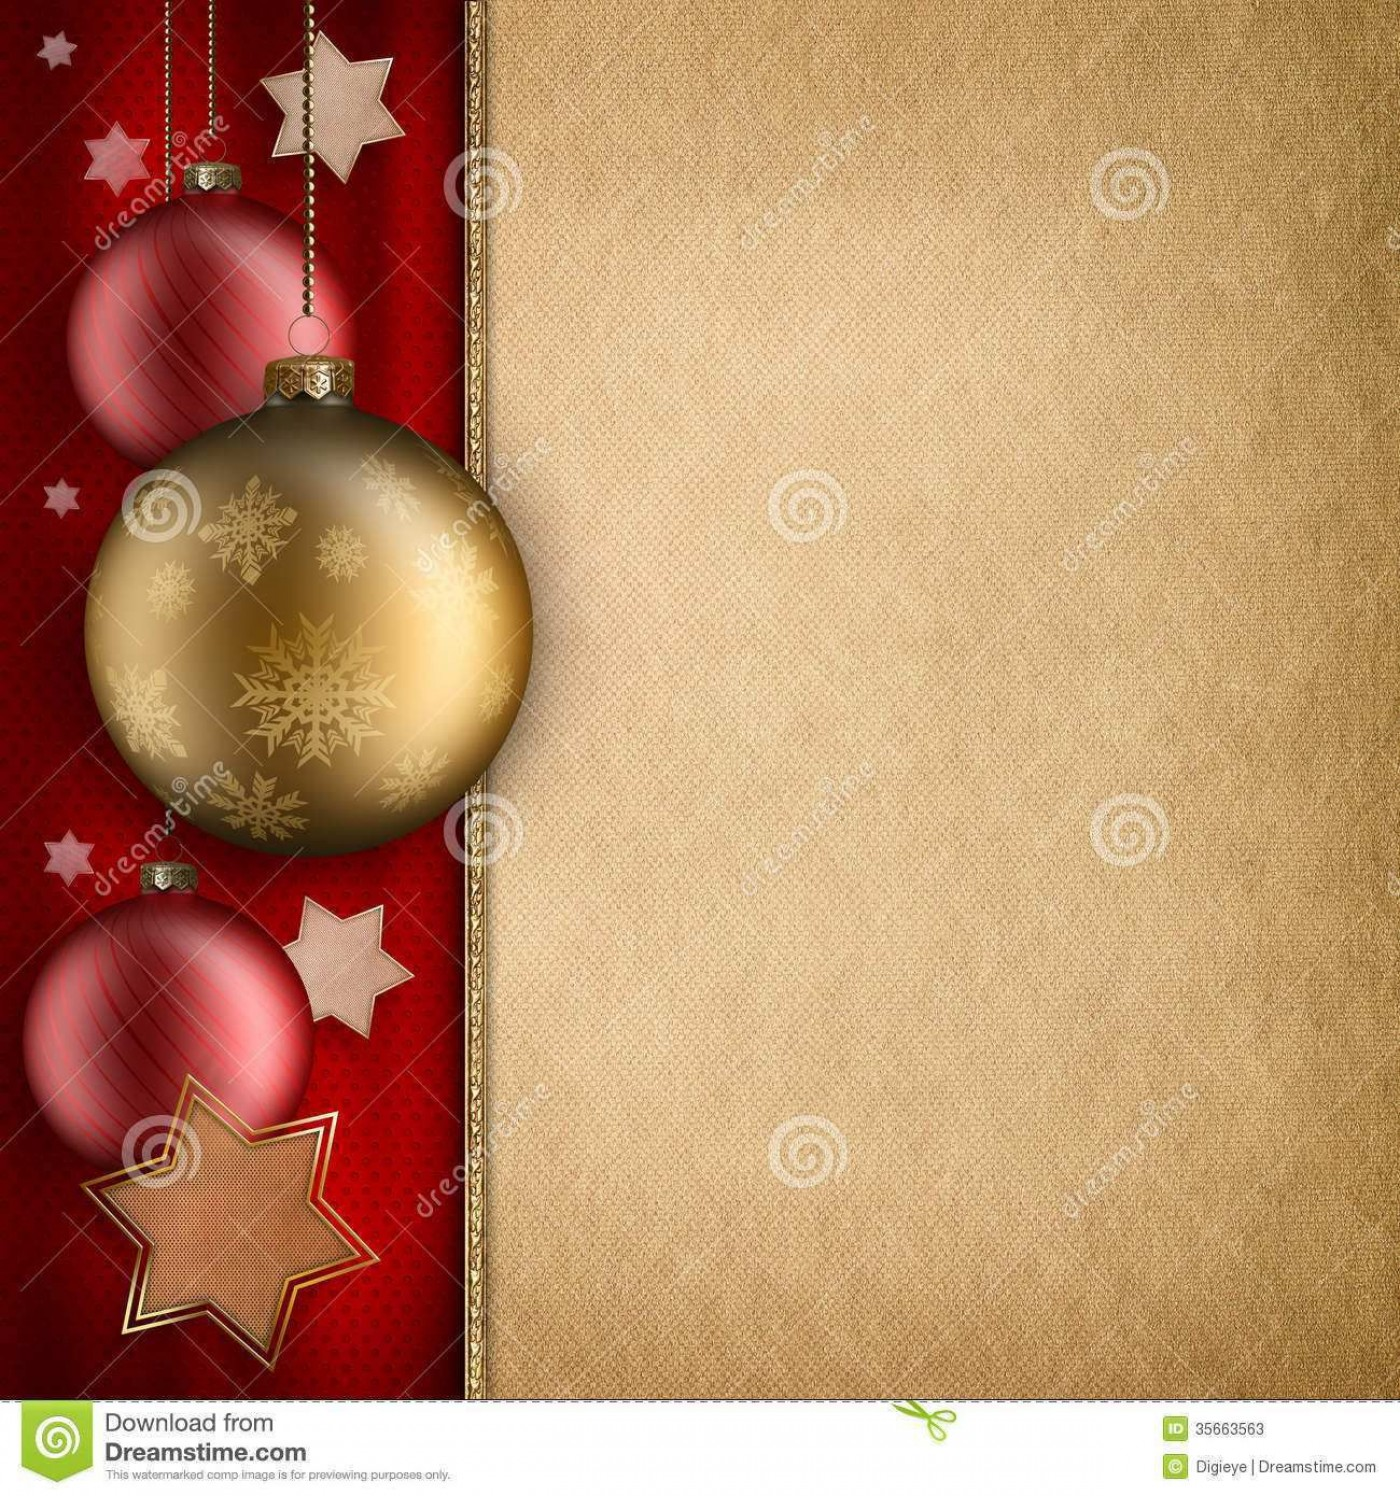 001 Fascinating Free Download Holiday Card Template High Definition 1400